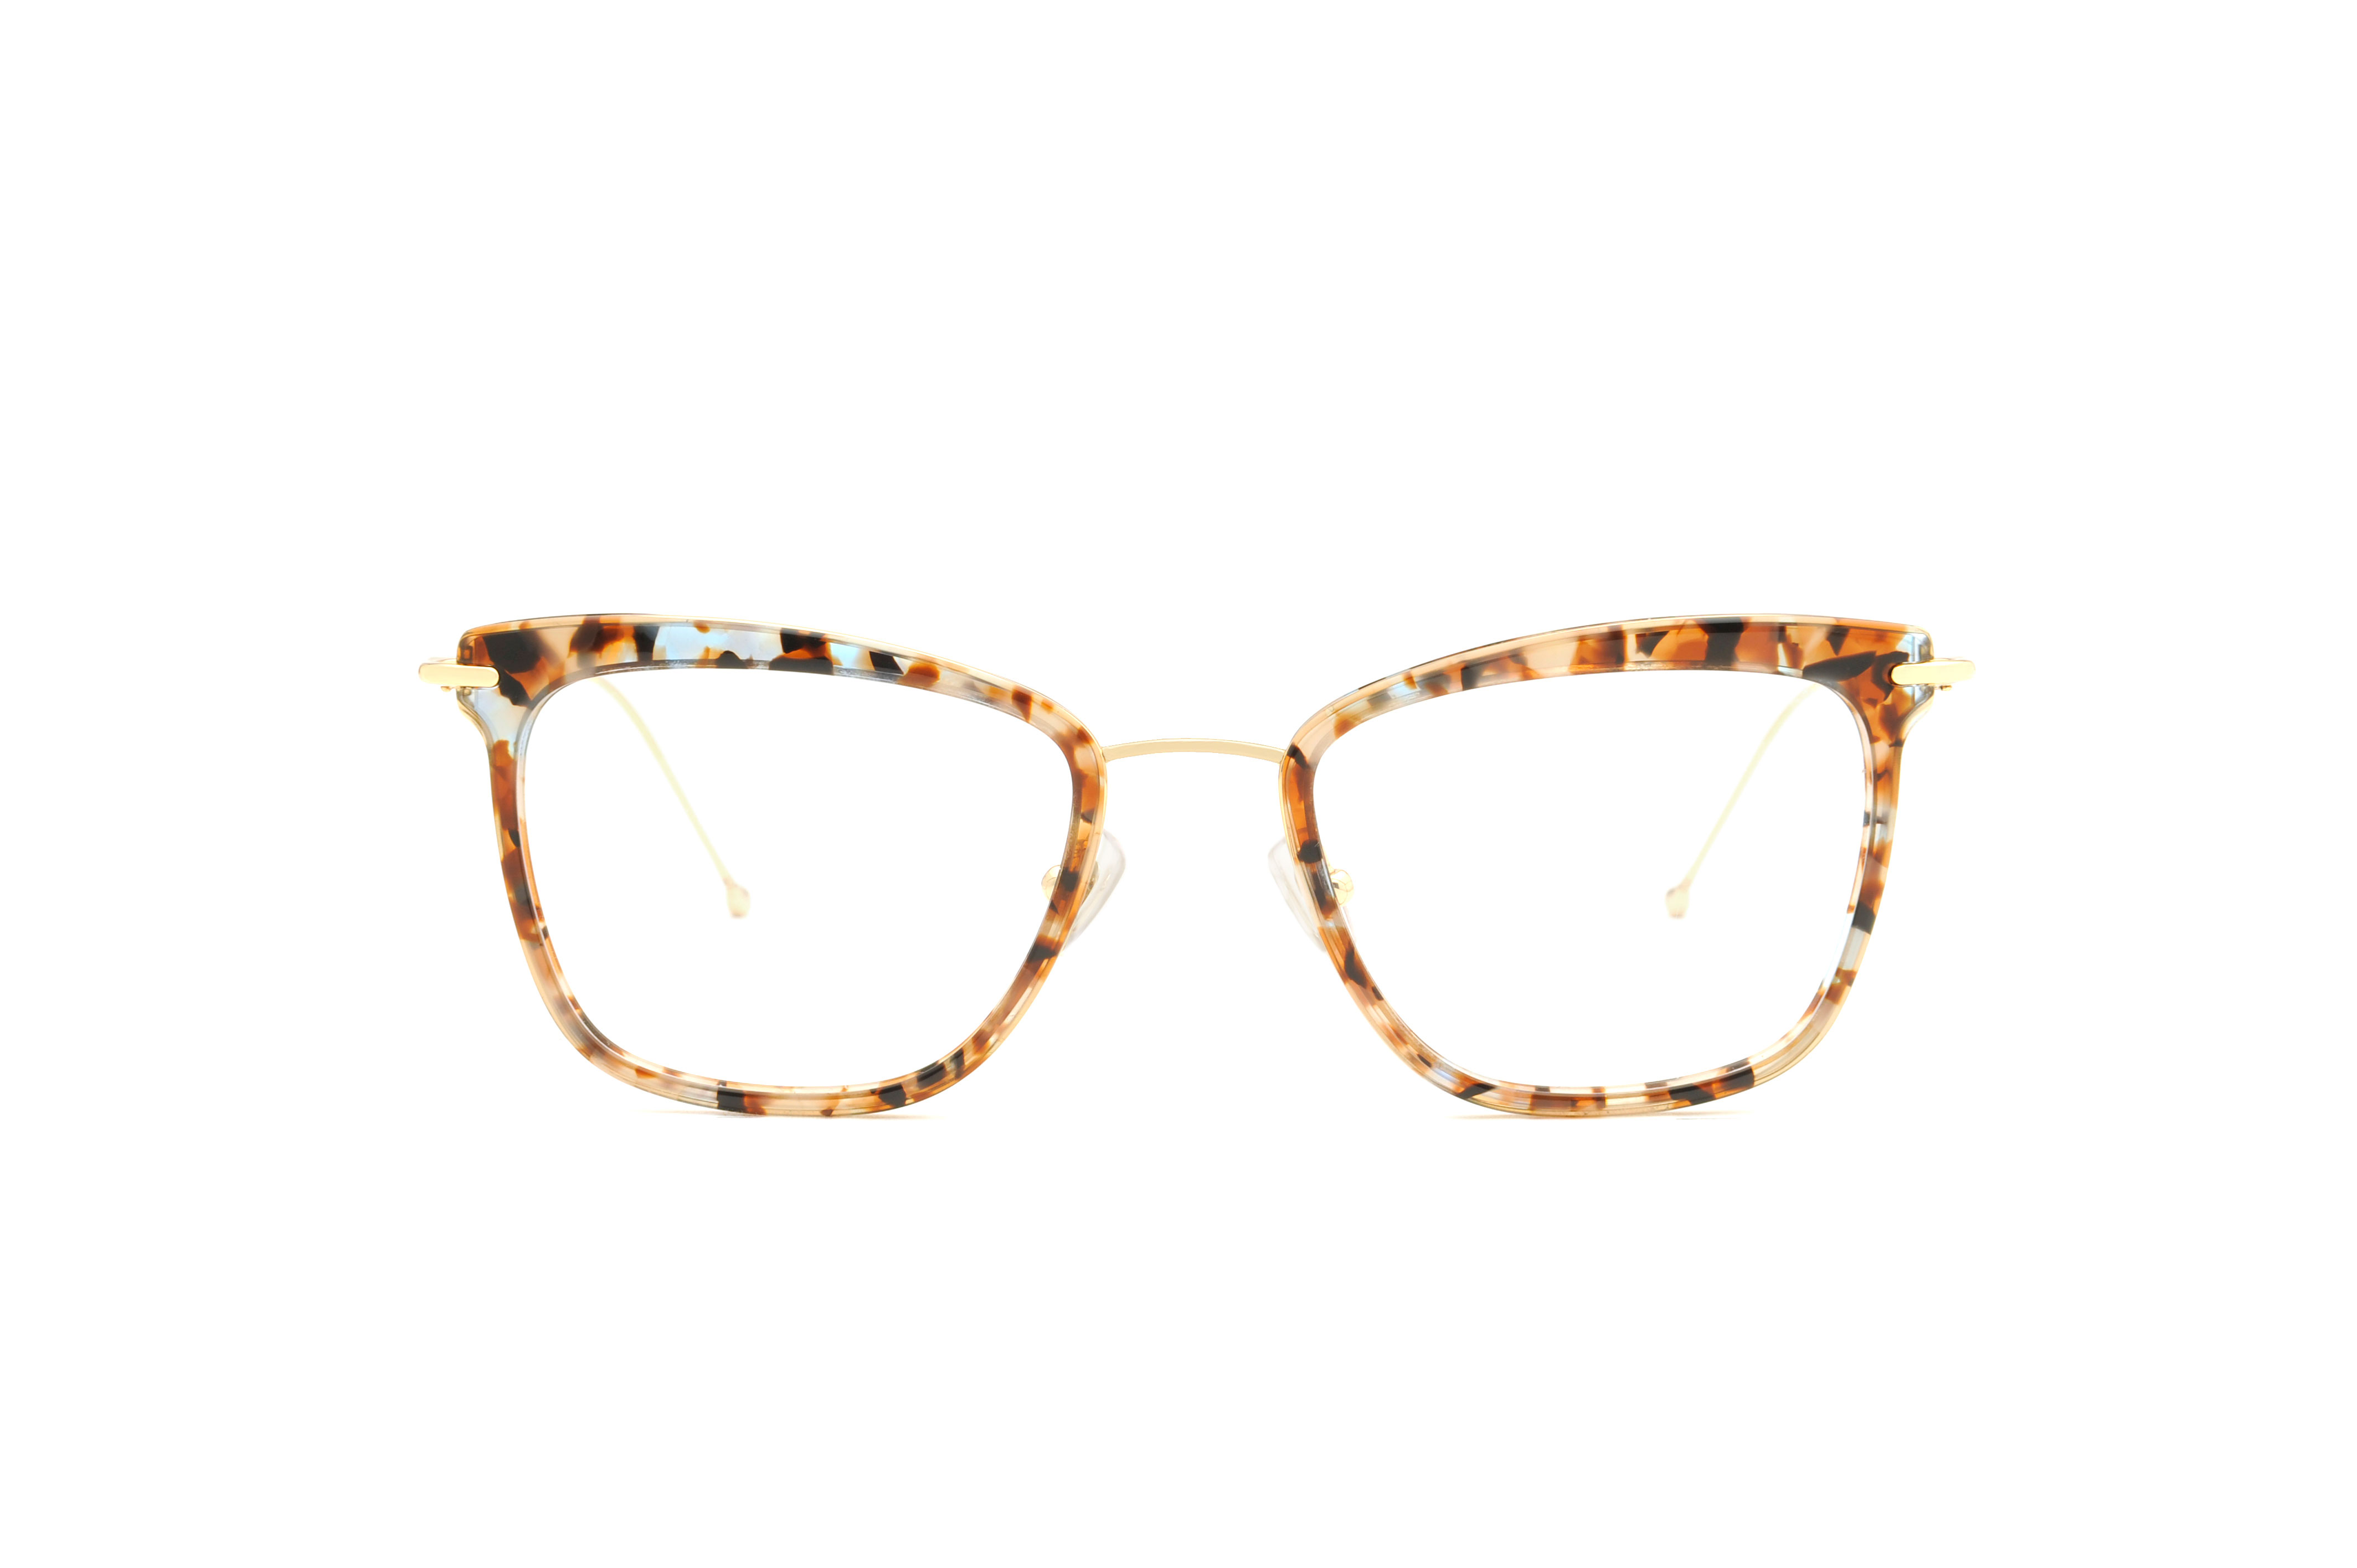 June acetate/metal cat eye tortoise sunglasses by GIGI Studios